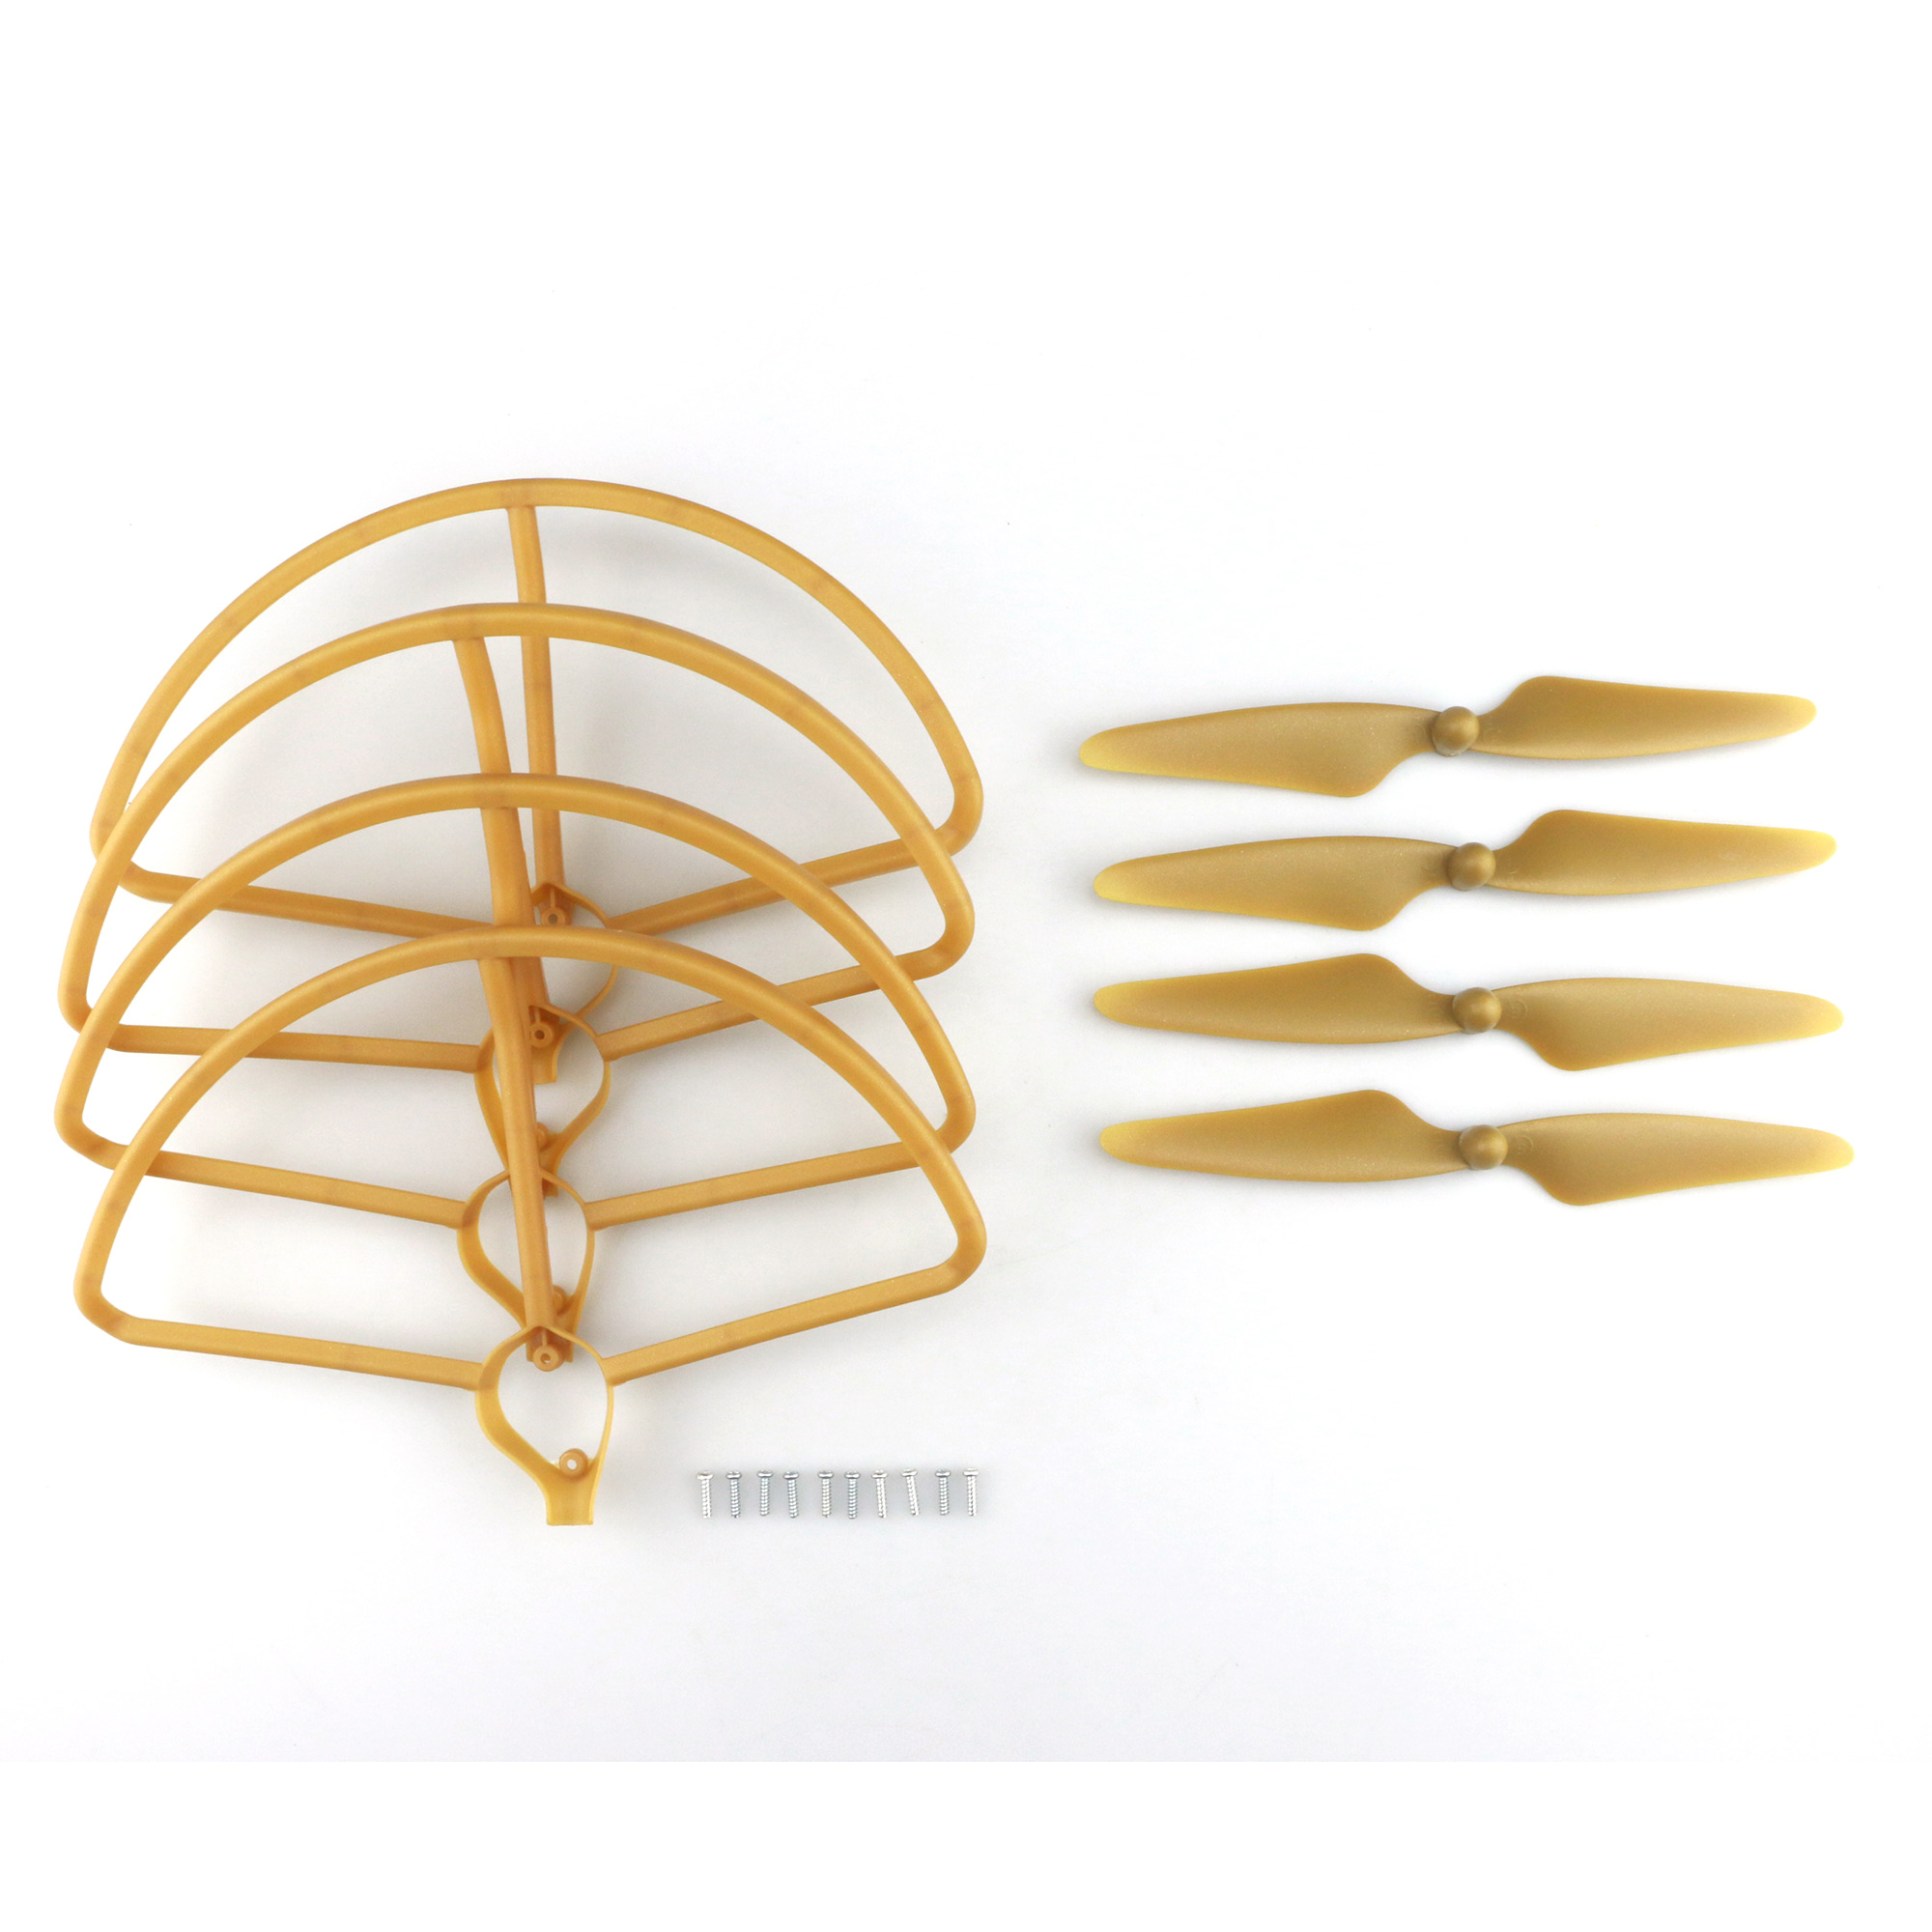 5DE3-Spare-Parts-Propeller-Blade-for-HUBSAN-H501S-H501C-Quadcopter-Accessories